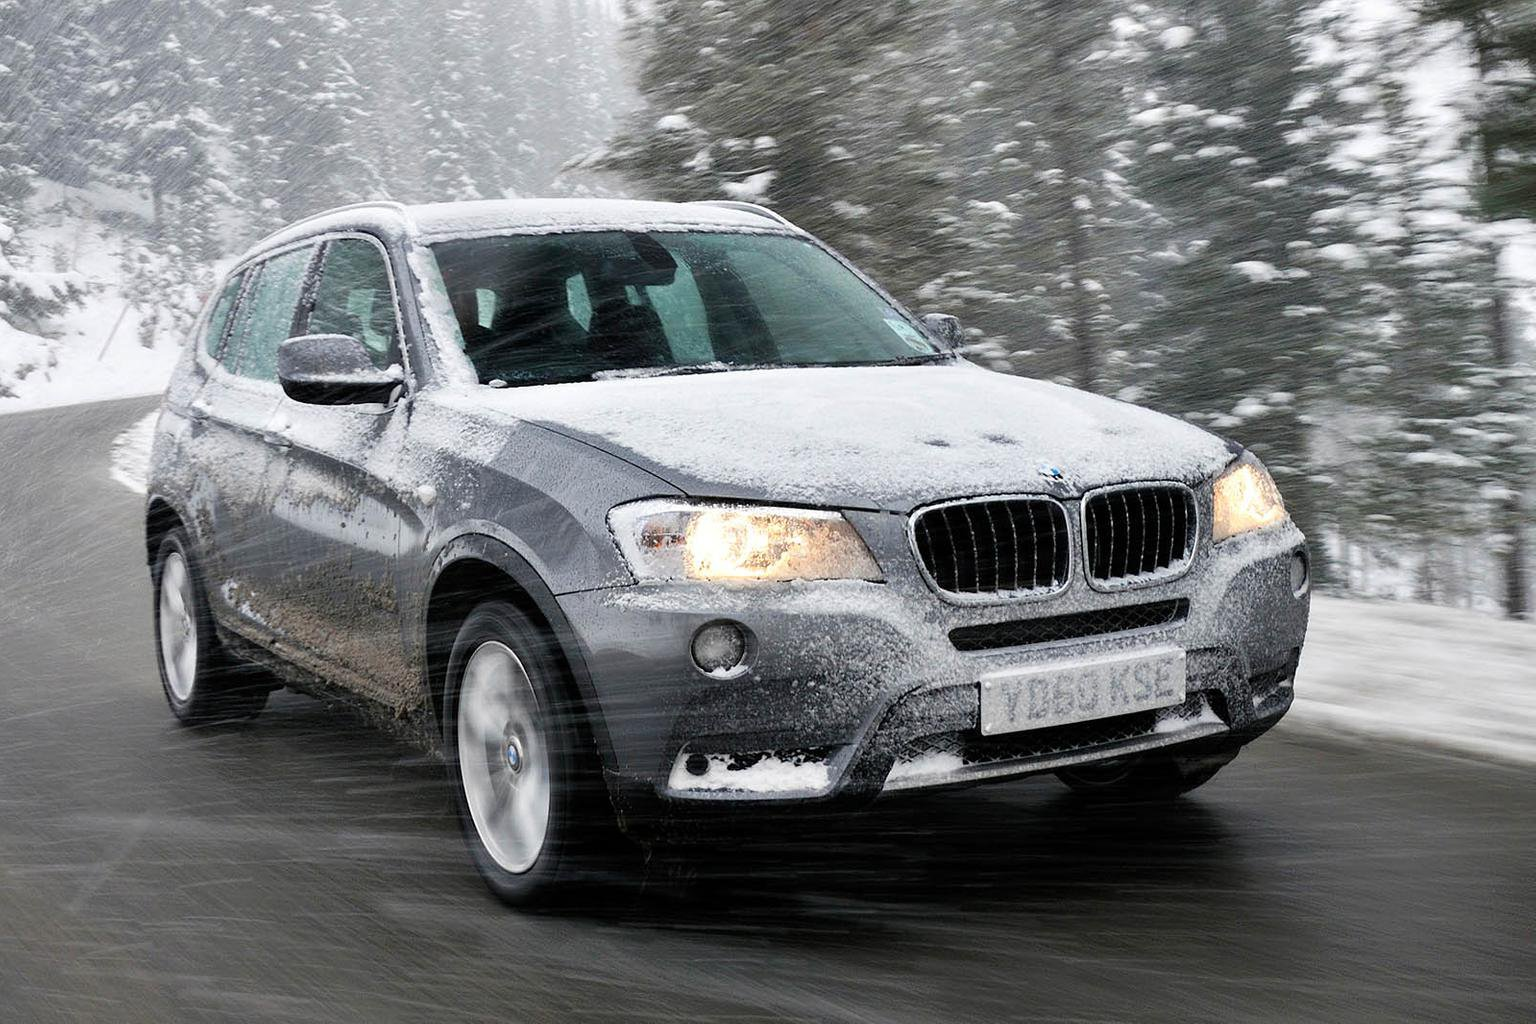 Lombardyexperience? winter driving guide 2018